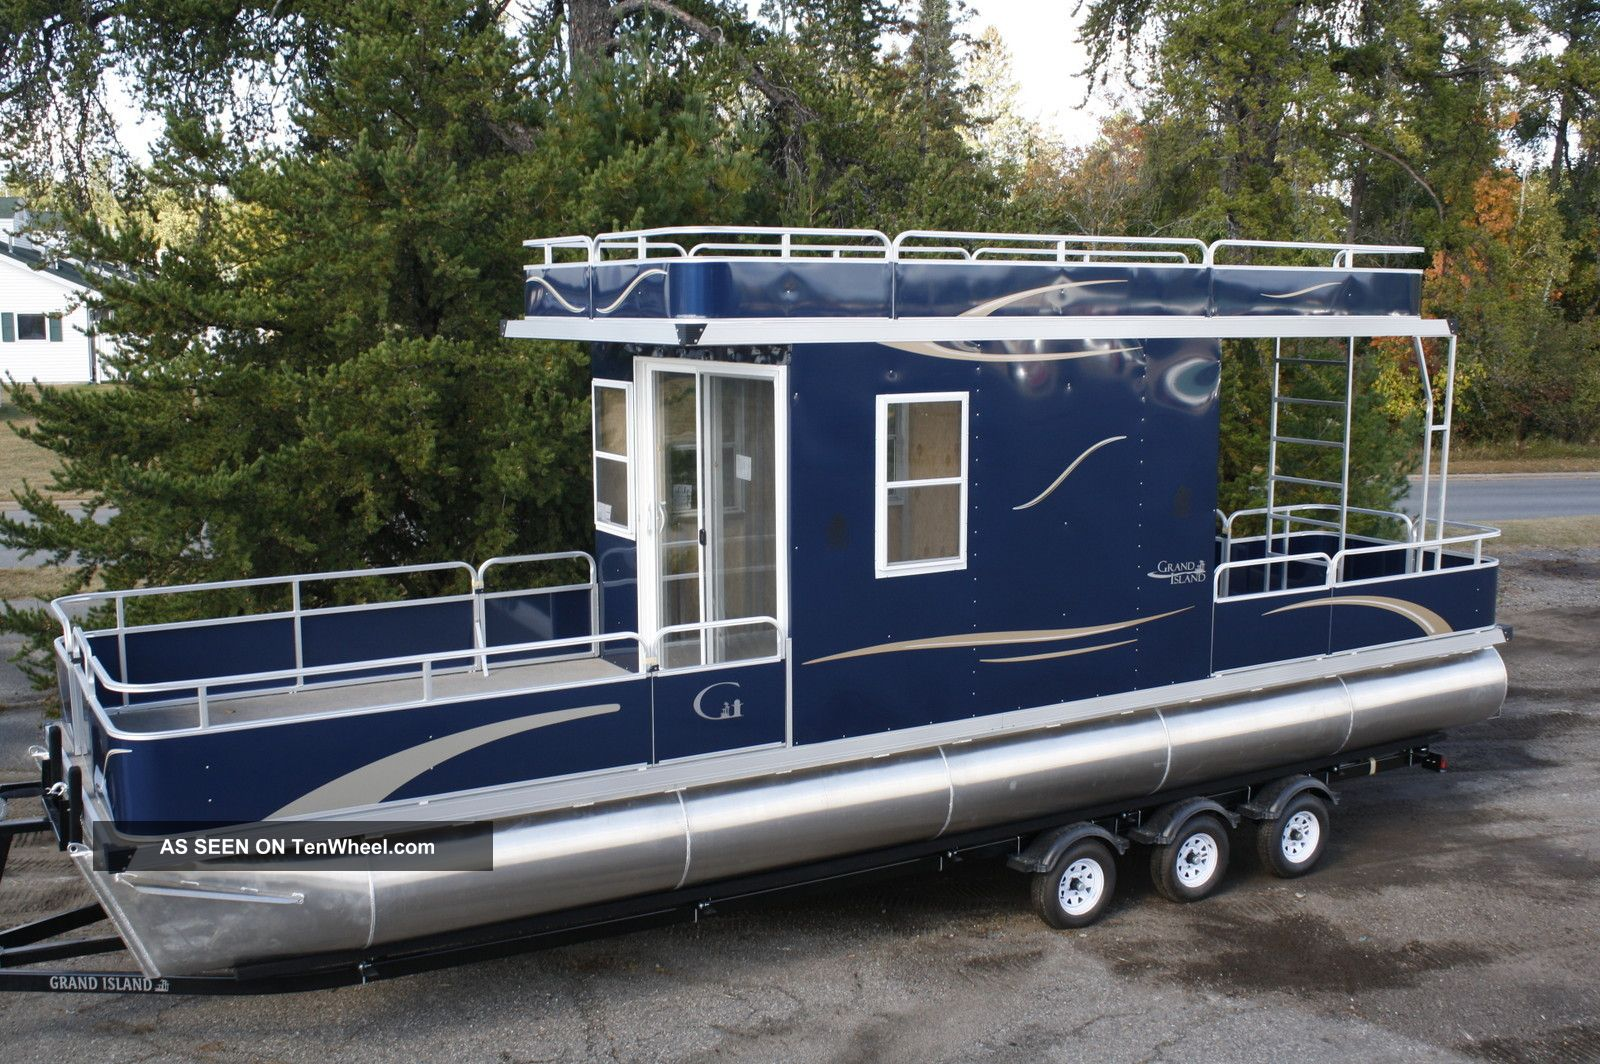 2013 grand island 32 house boat pontoon deck boats photo 11